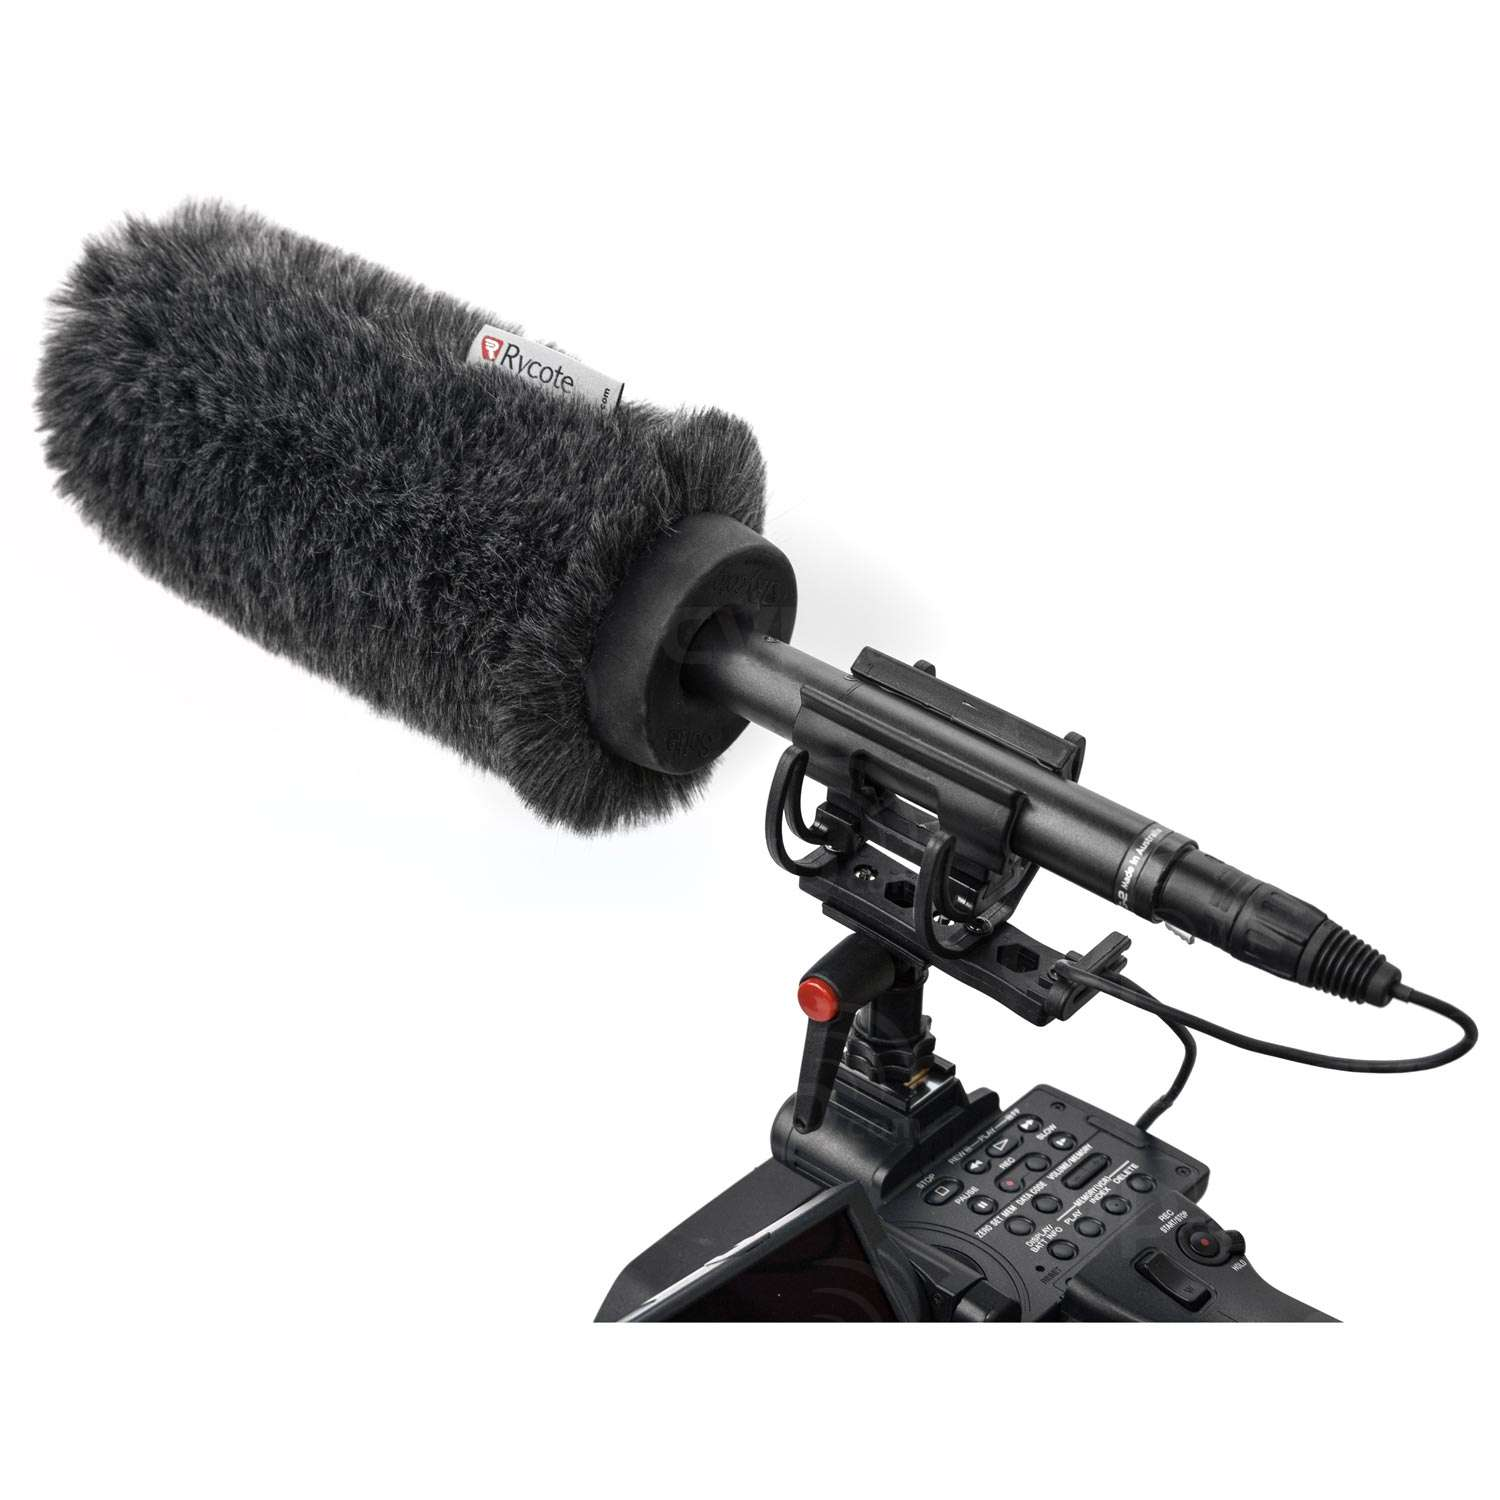 Rycote 033394 Softie Kit for Rode NTG Microphones